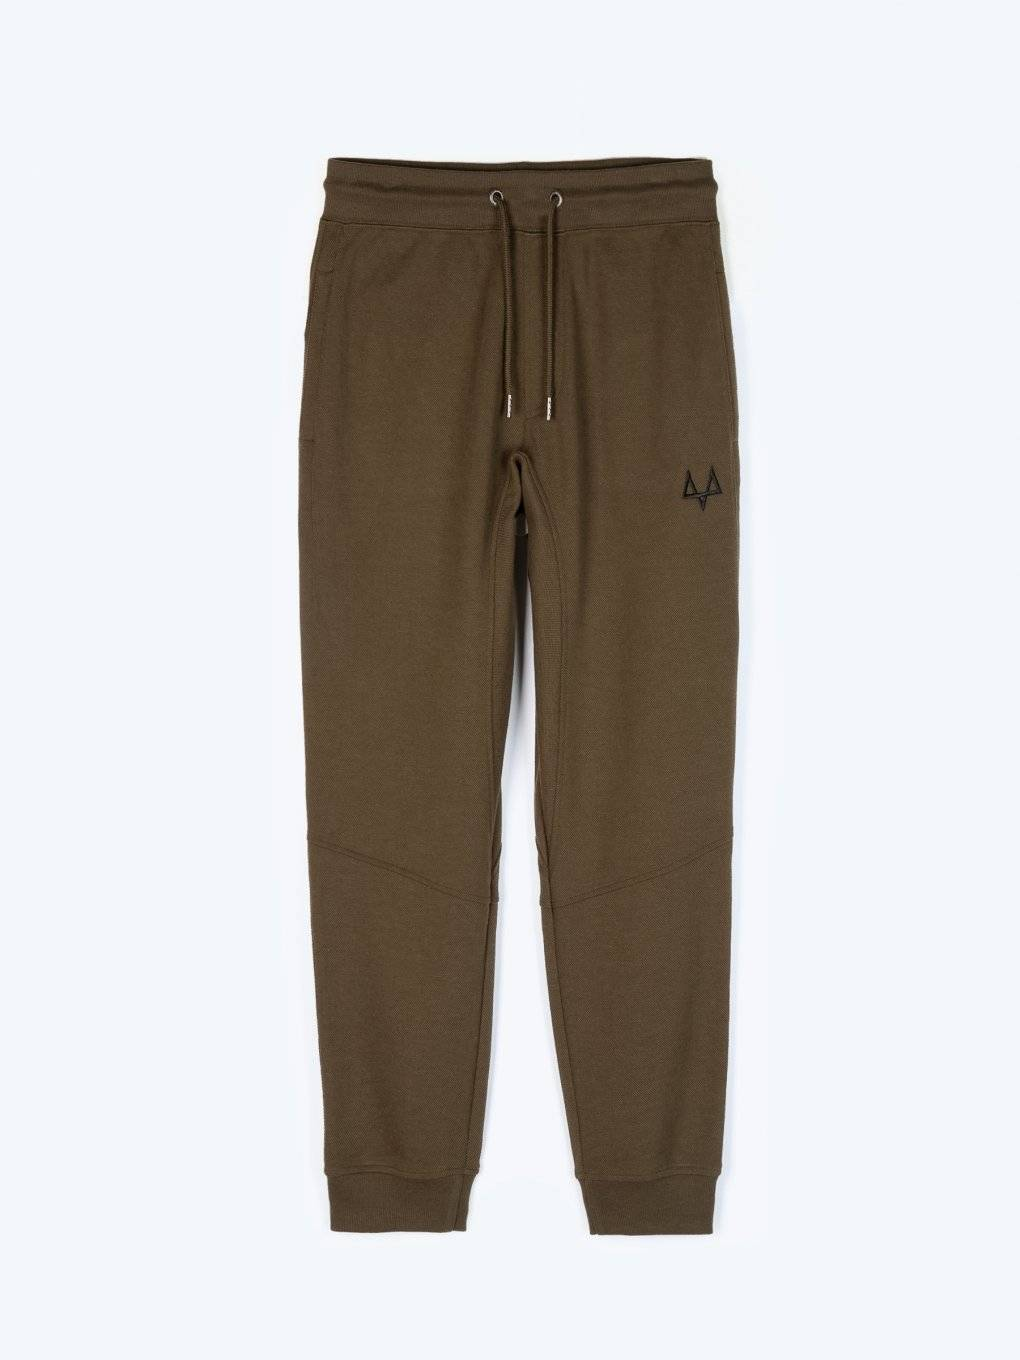 Plain sweatpants